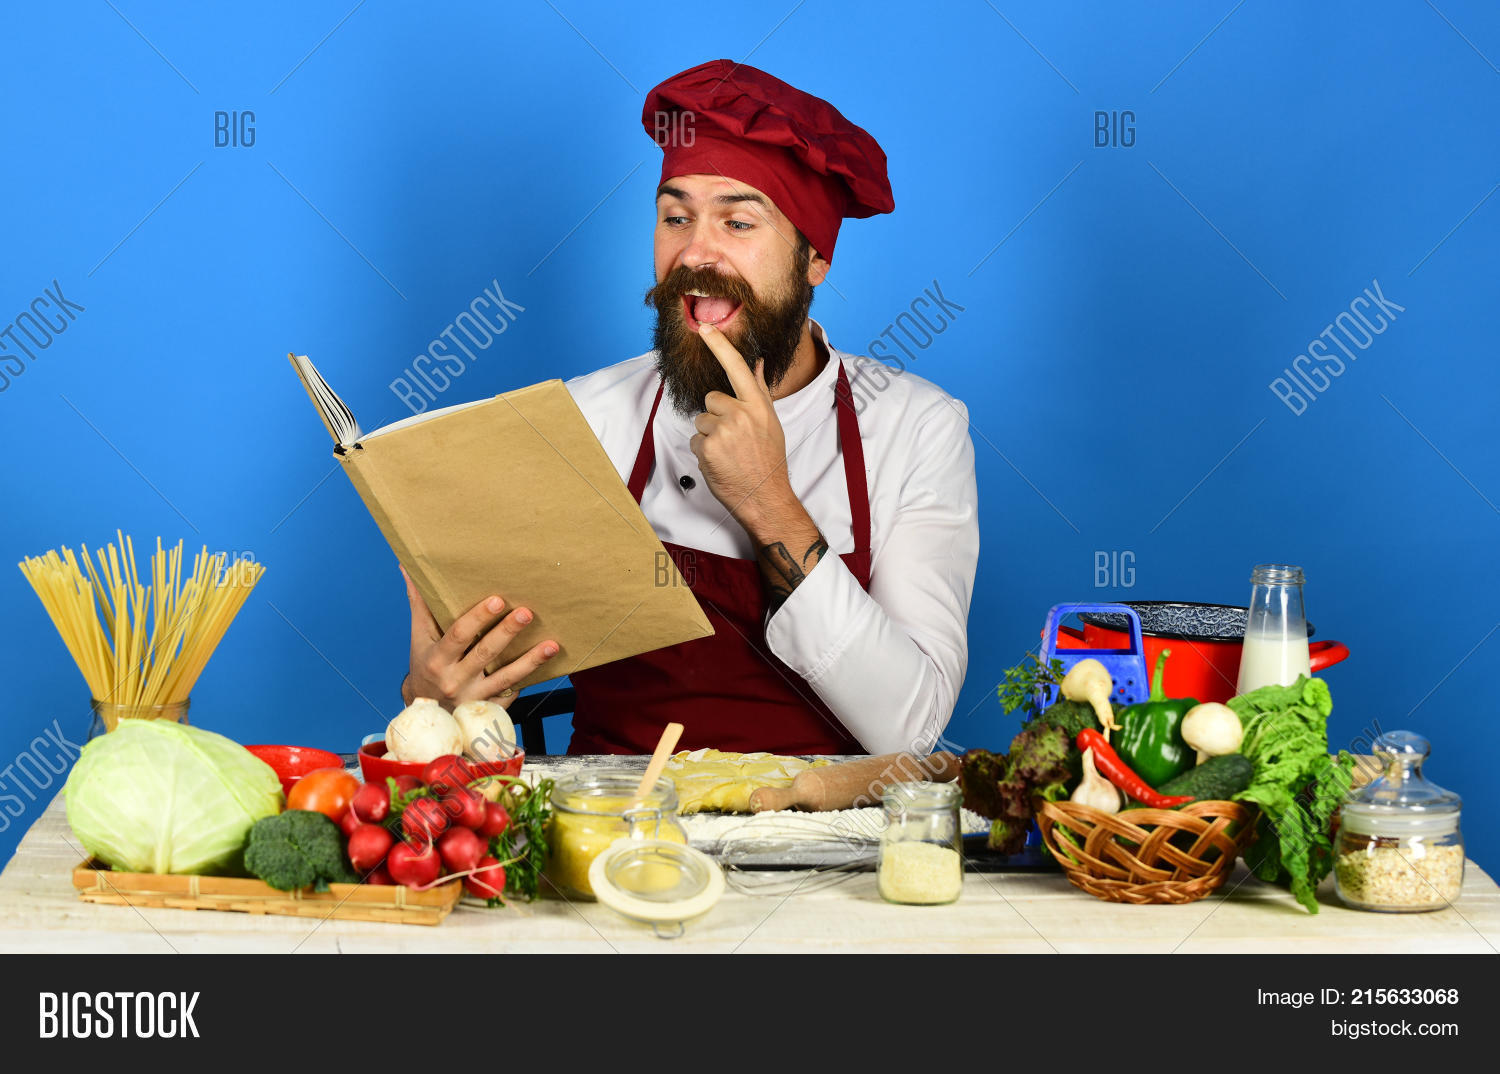 Man beard holds recipe image photo free trial bigstock man with beard holds recipe book or menu on blue forumfinder Gallery